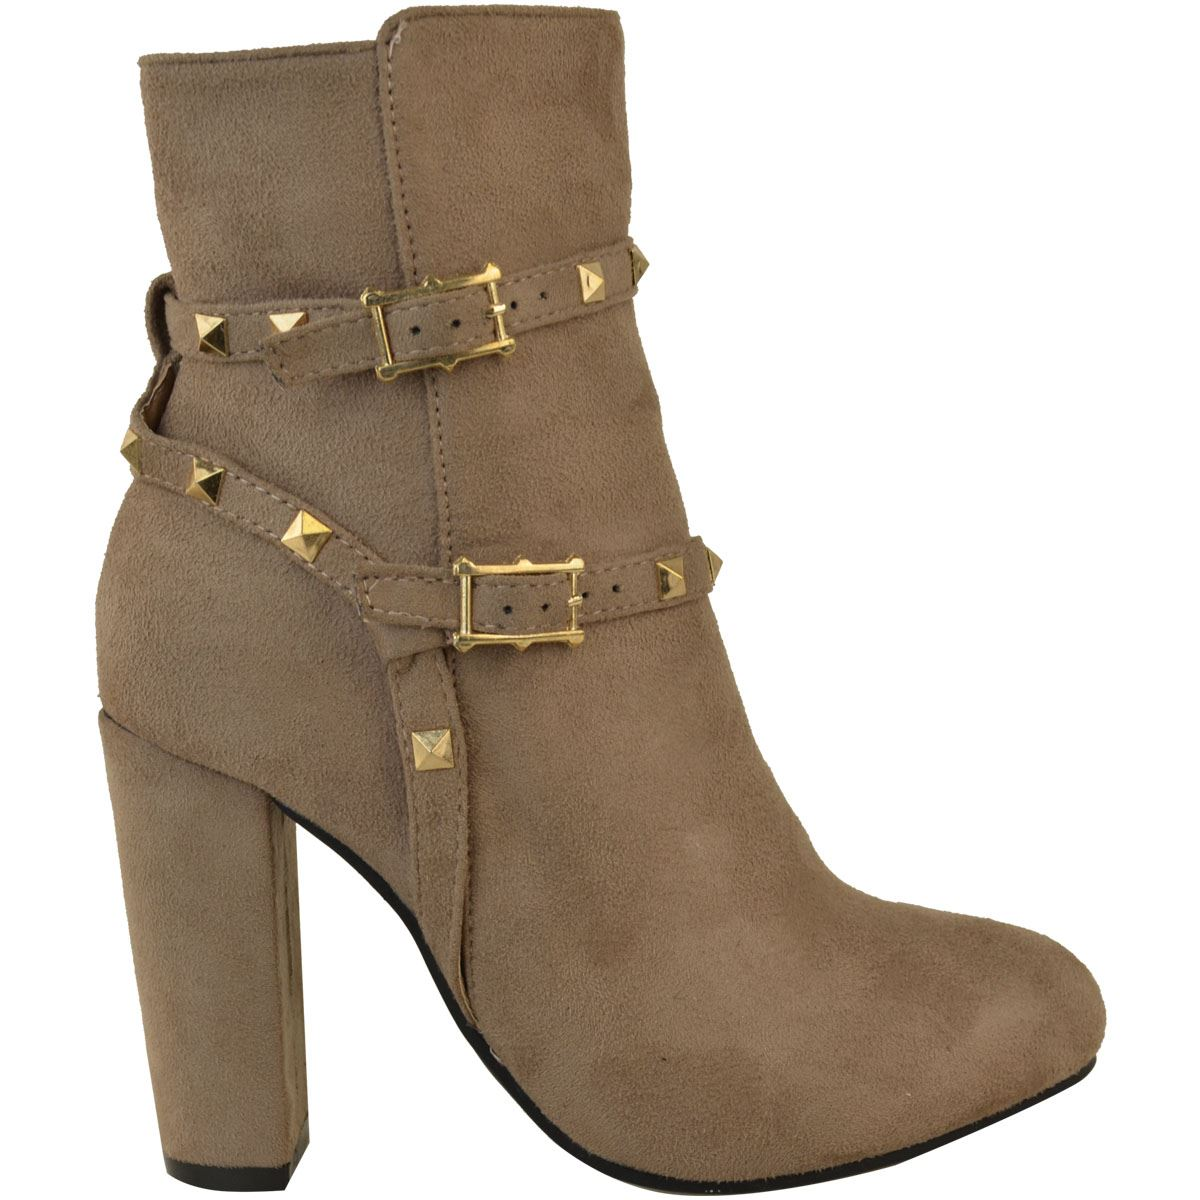 thumbnail 30 - WOMENS-LADIES-LOW-BLOCK-HEEL-CHELSEA-ANKLE-BOOTS-CUT-OUT-LACE-UP-SHOES-NEW-SIZE